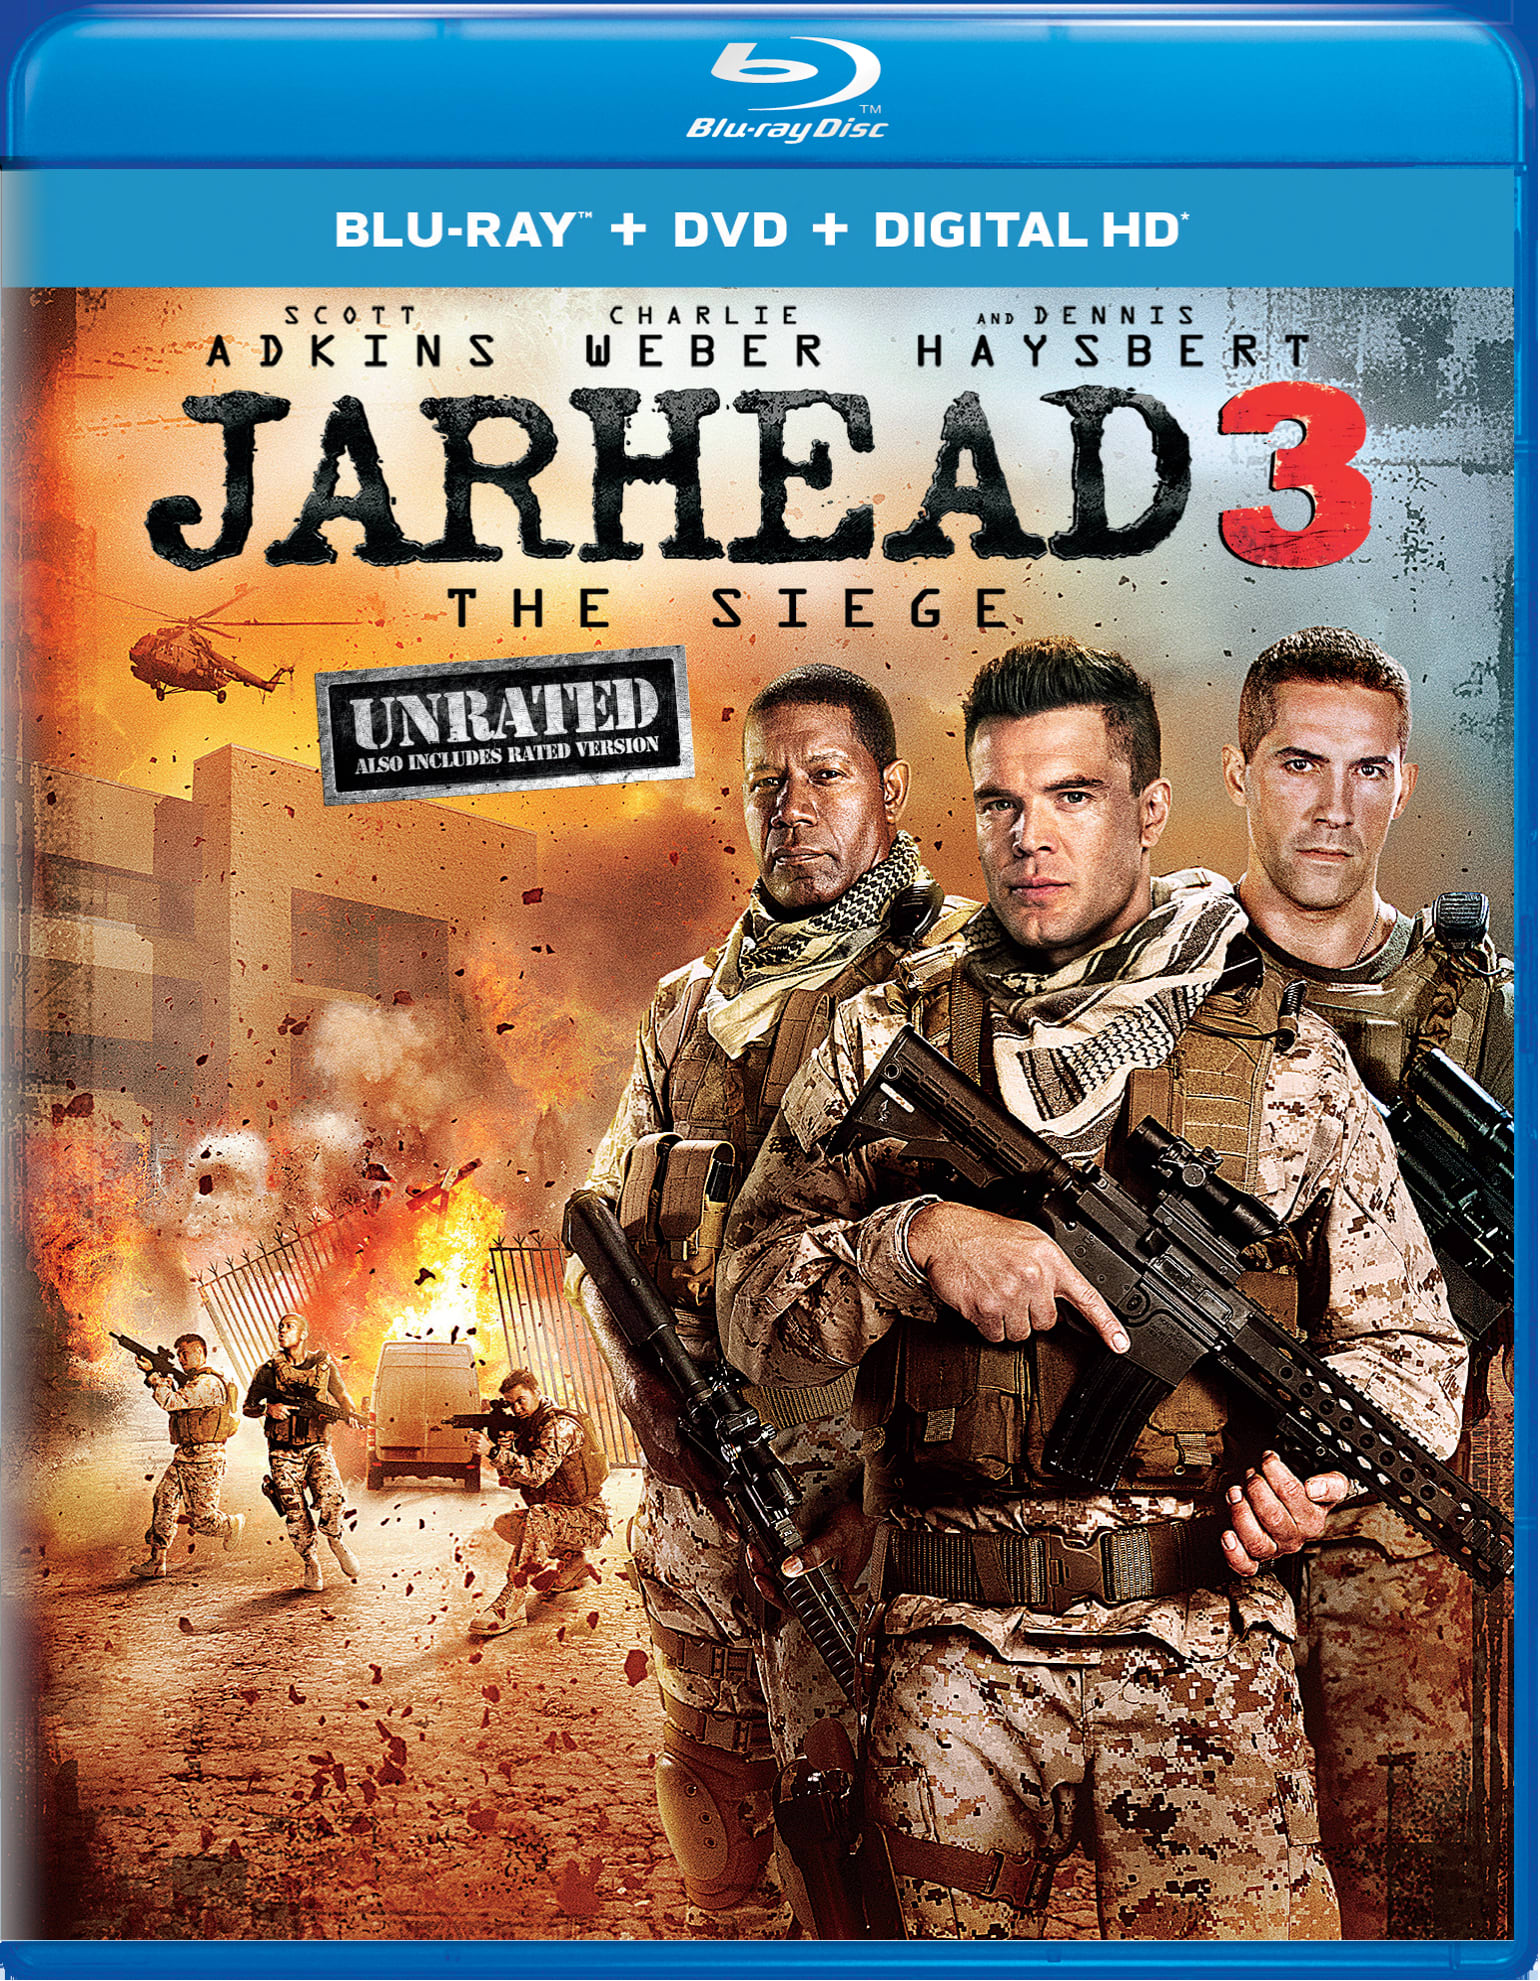 Jarhead 3: The Siege (Unrated Edition DVD + Digital) [Blu-ray]